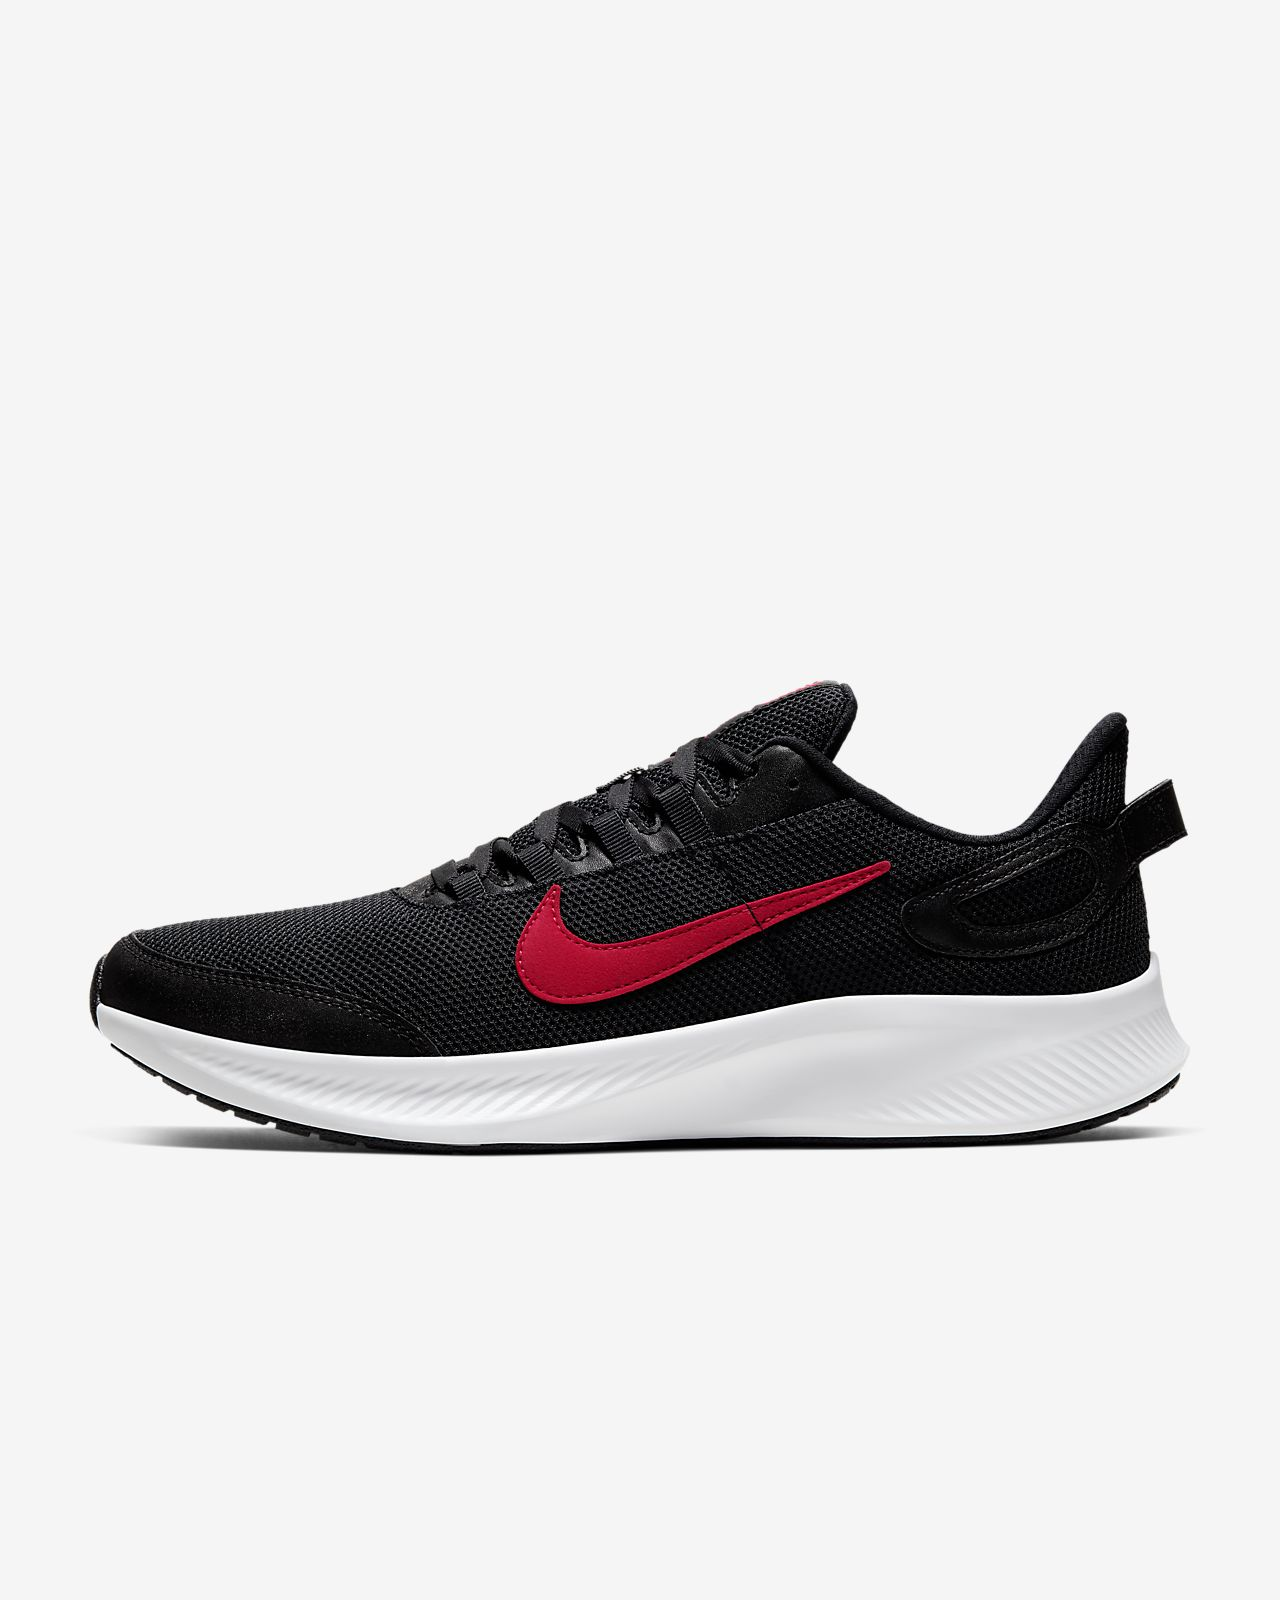 Nike Run All Day 2 Men's Running Shoe